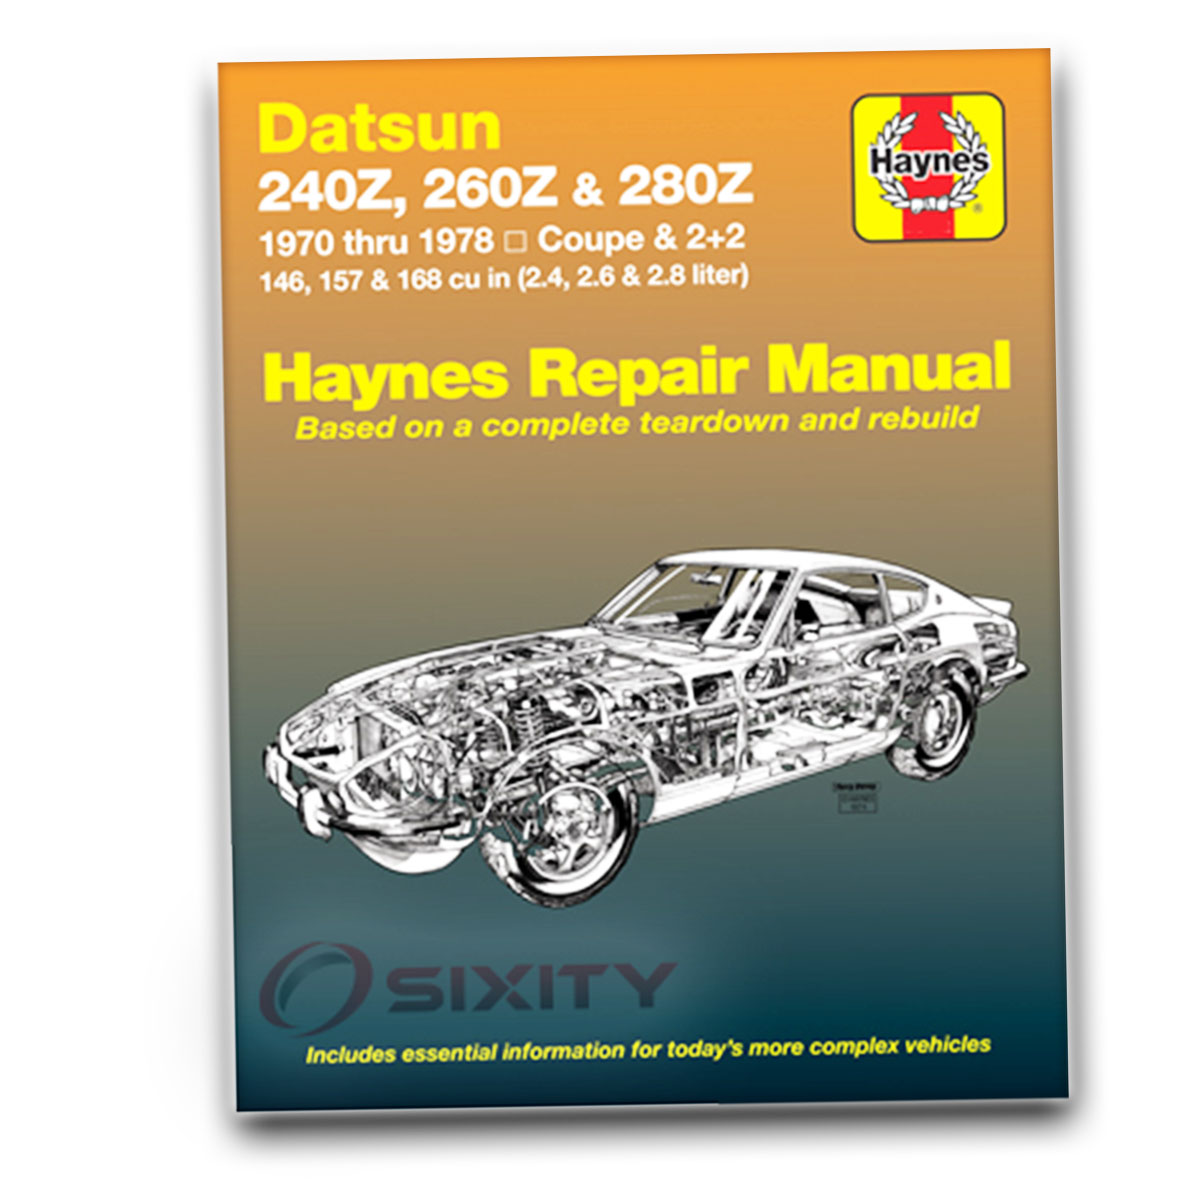 nissan 280z haynes repair manual 2 2 base shop service garage book rh ebay com How Many Liters Is 2 2 Liters Equals Cups